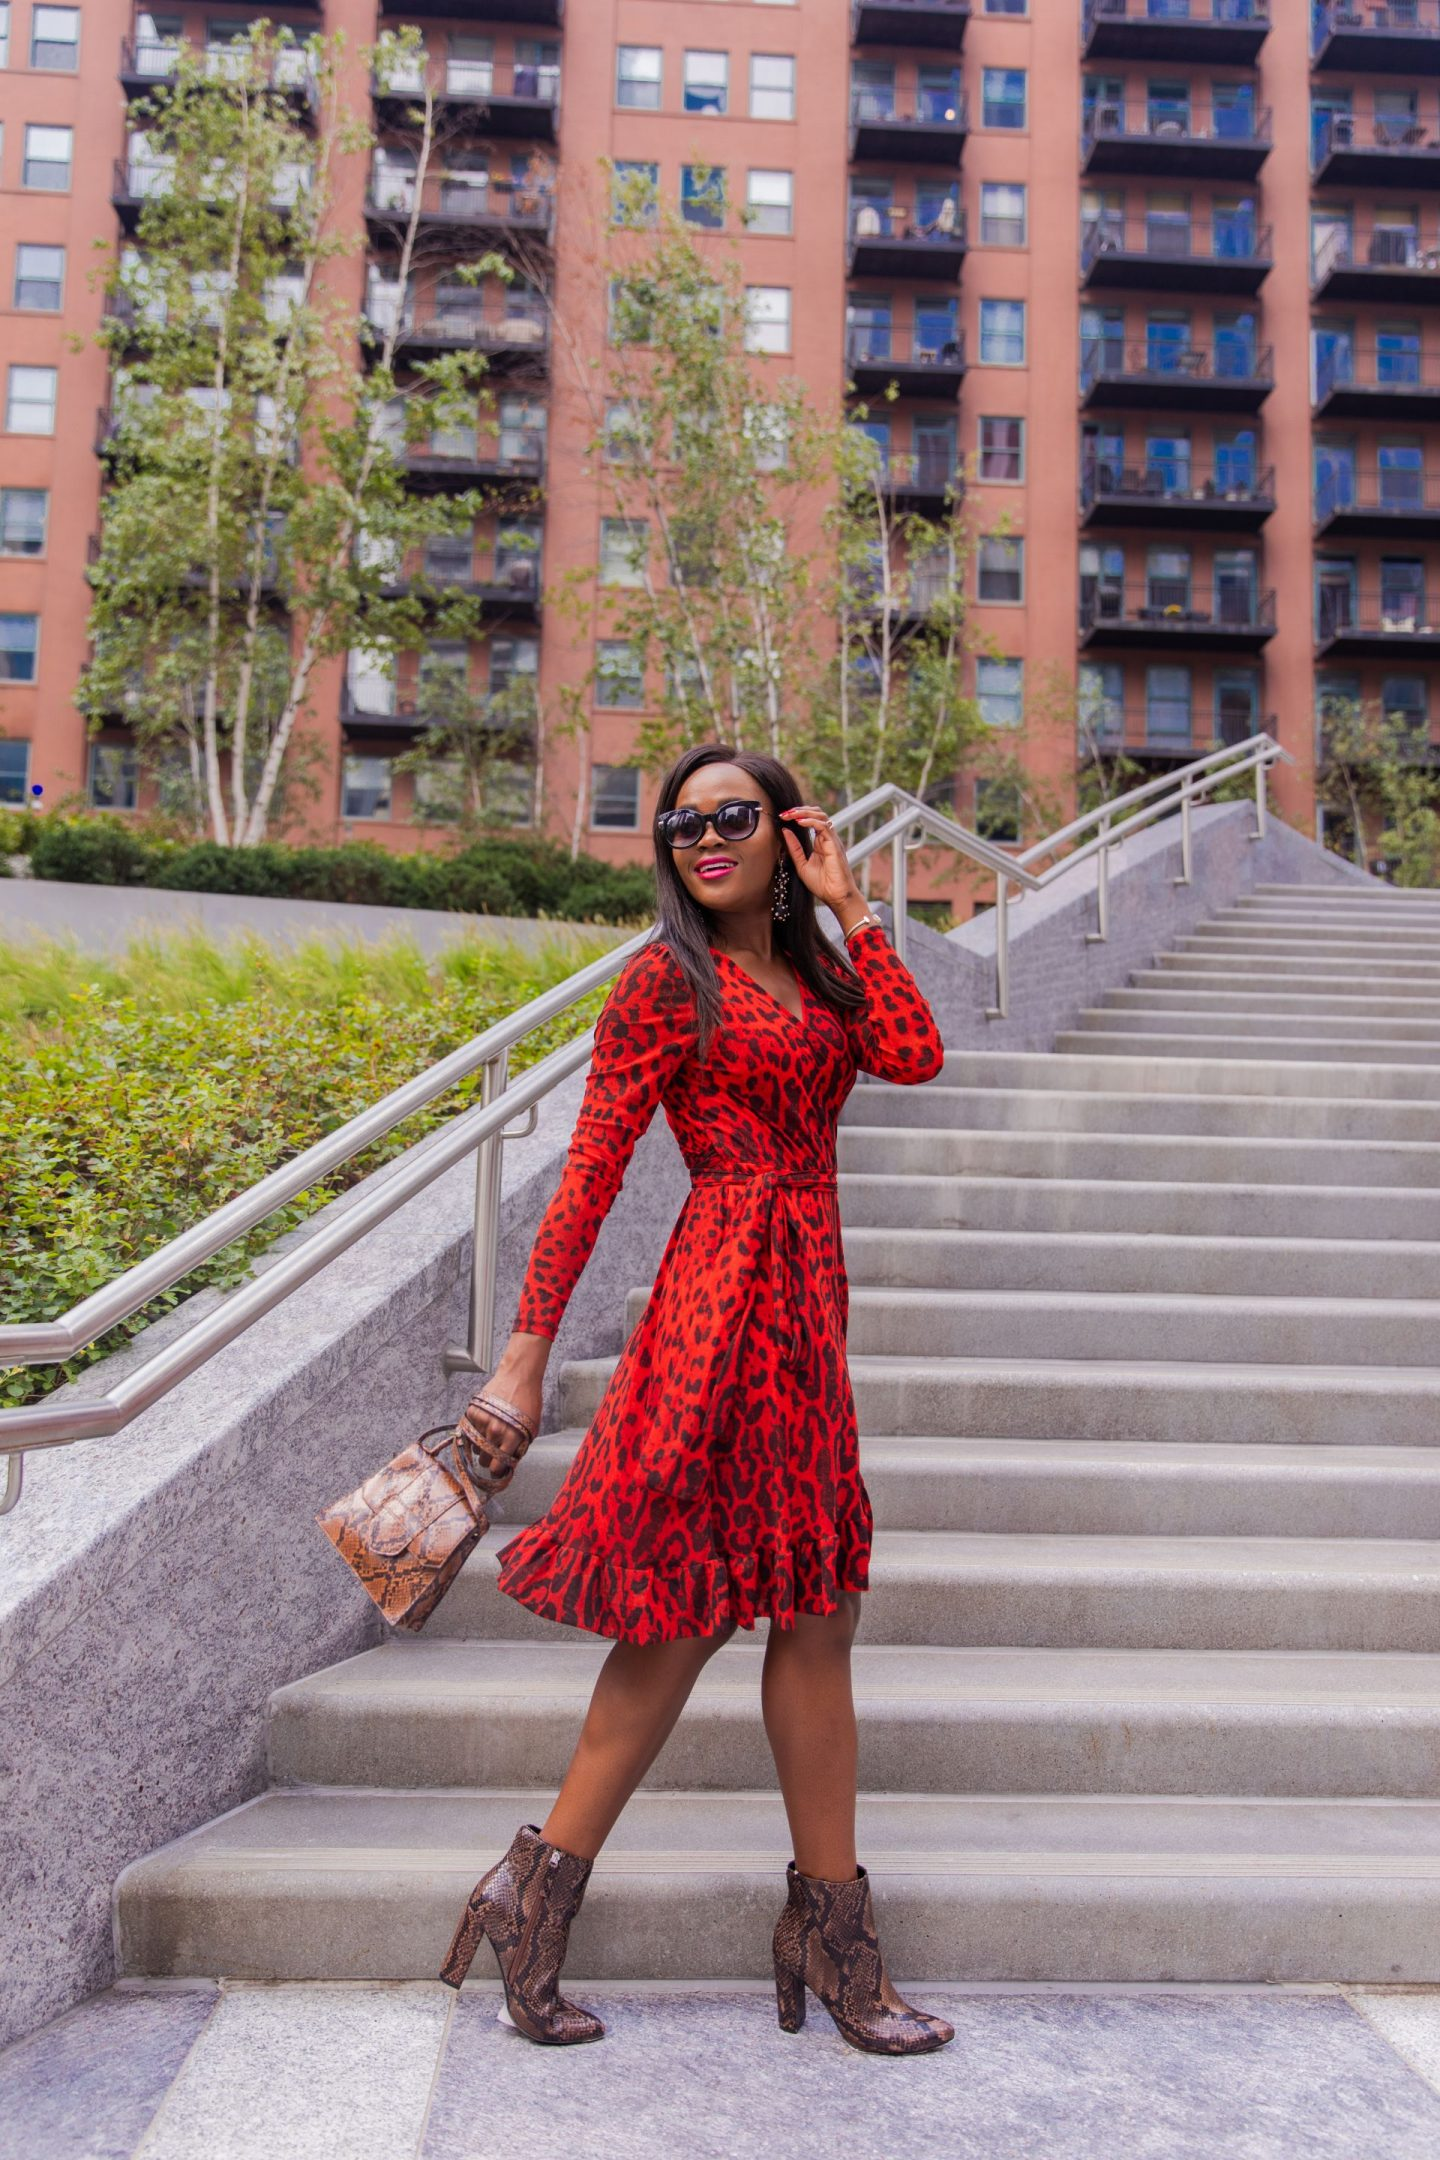 cranberry Tantrums, Jennifer Ibe, animal print outfits to wear this Fall.